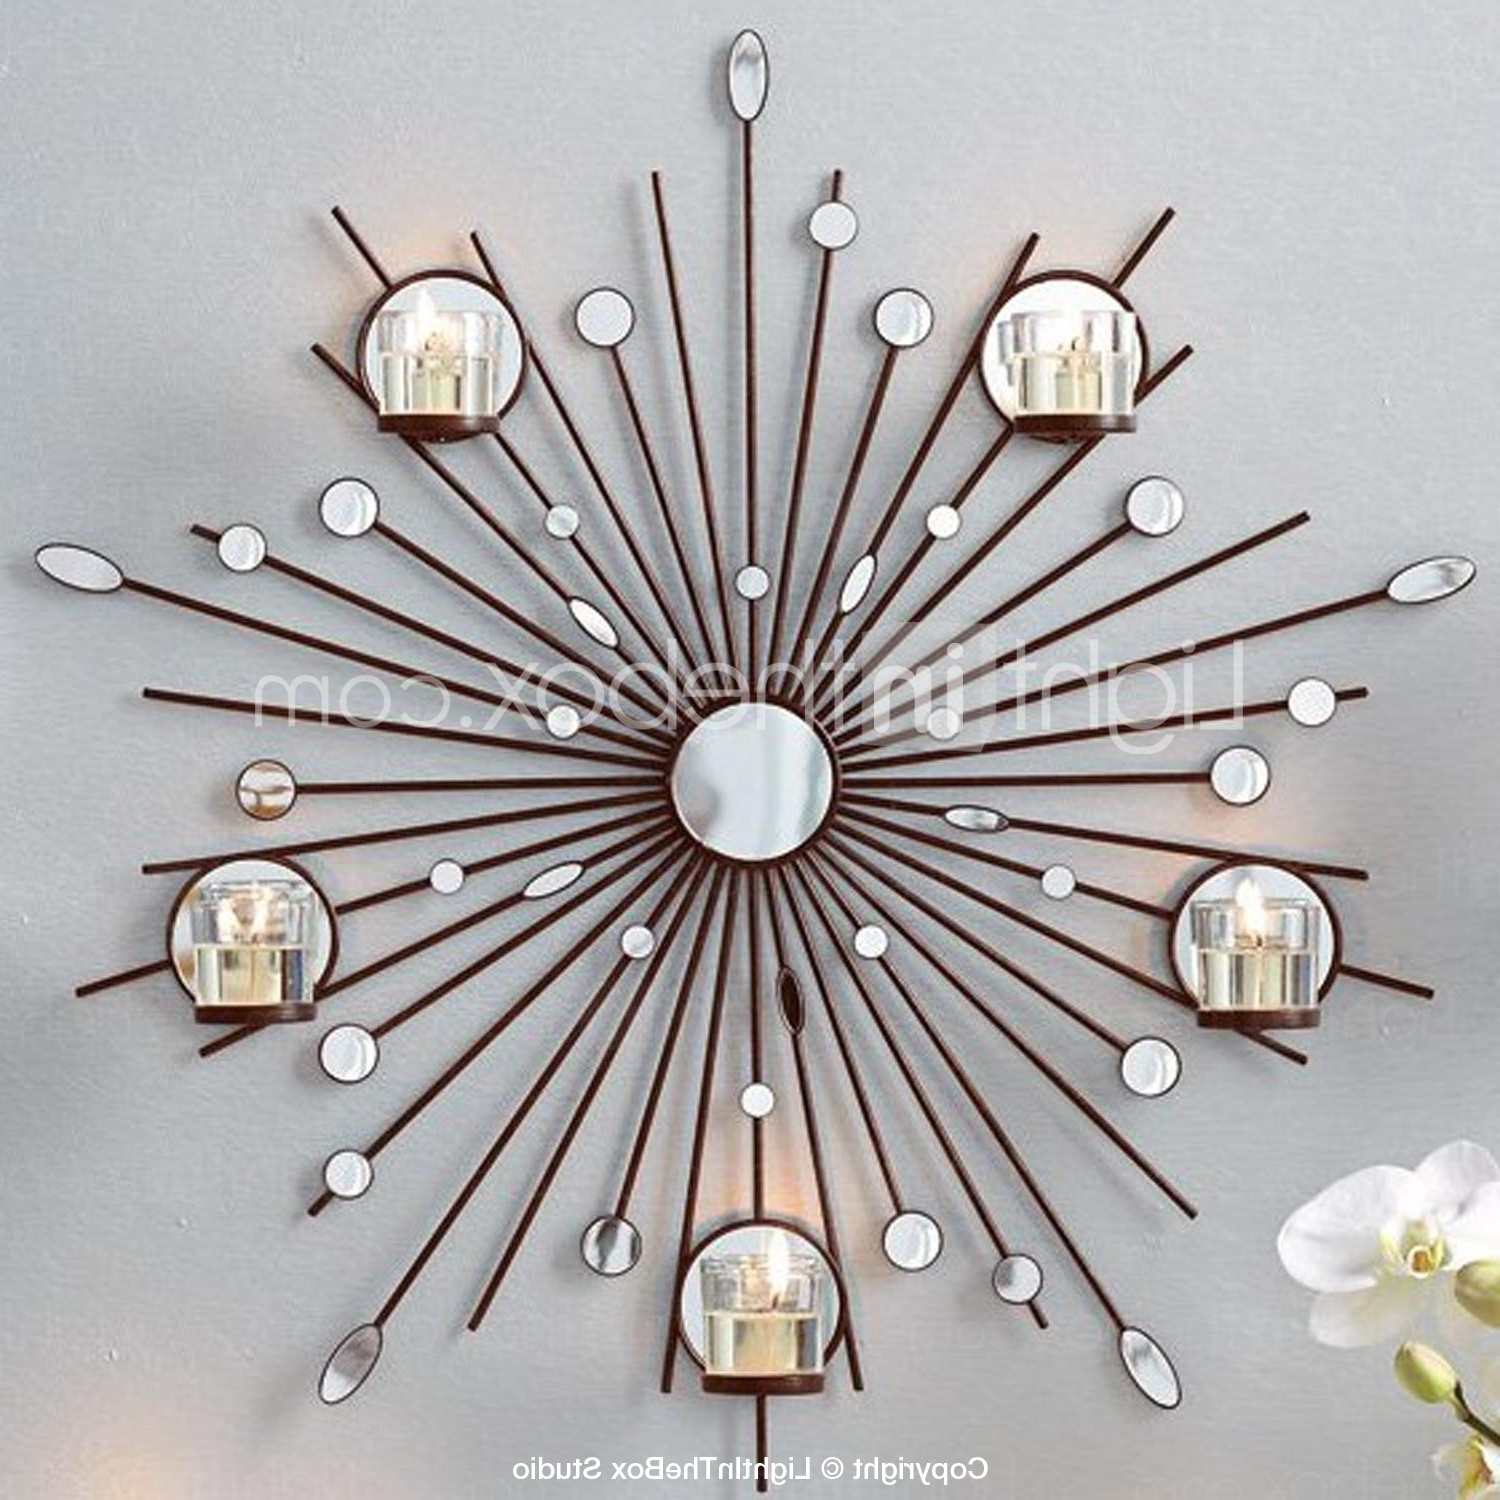 Well Liked Metal Wall Art Wall Decor,the Sun Mirror Candlestick Wall Decor Within Metal Wall Art With Candles (View 15 of 15)